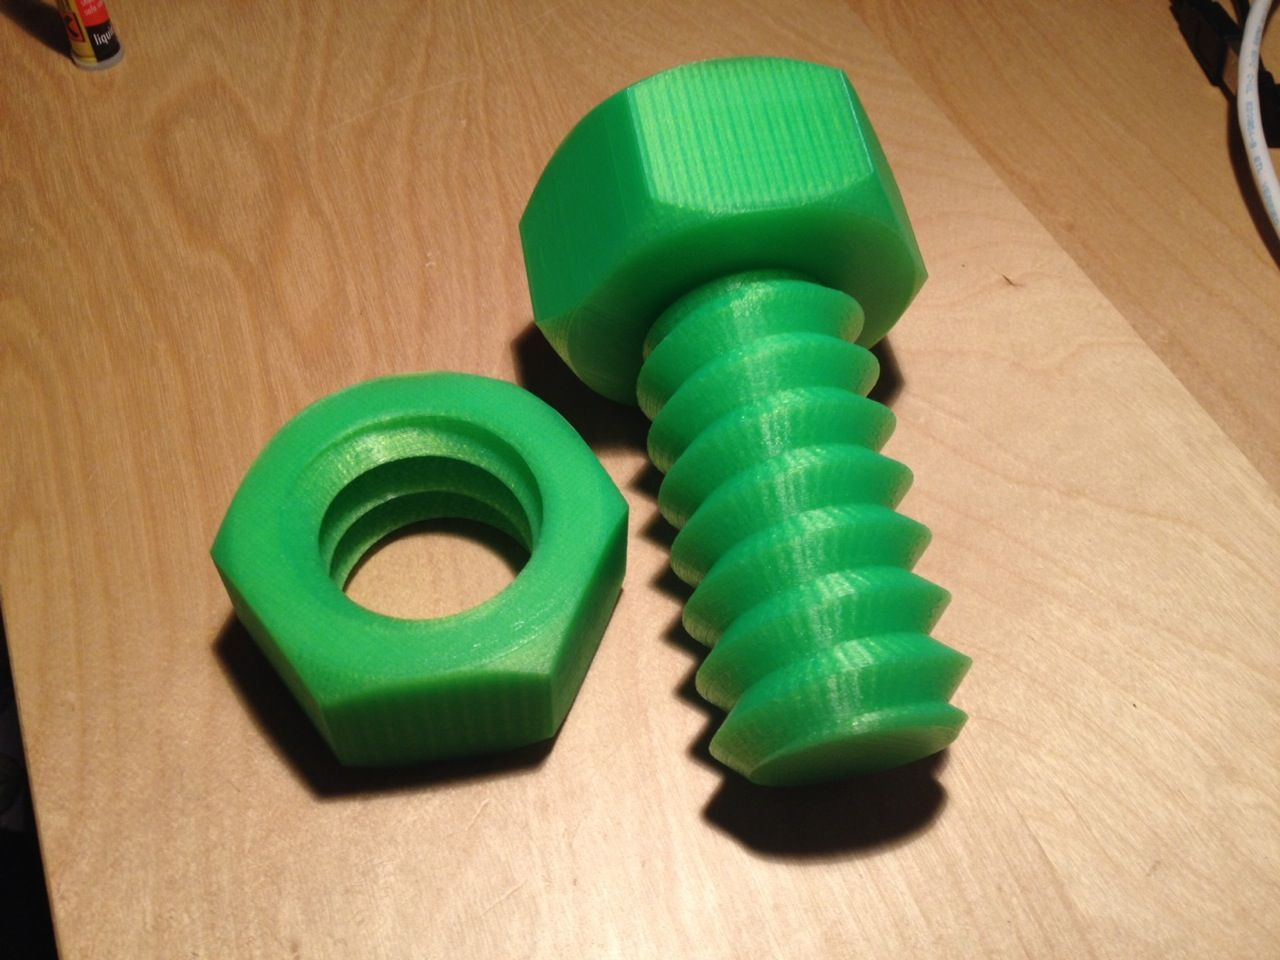 useful 3d printed objects - Google Search | Useful 3D ...